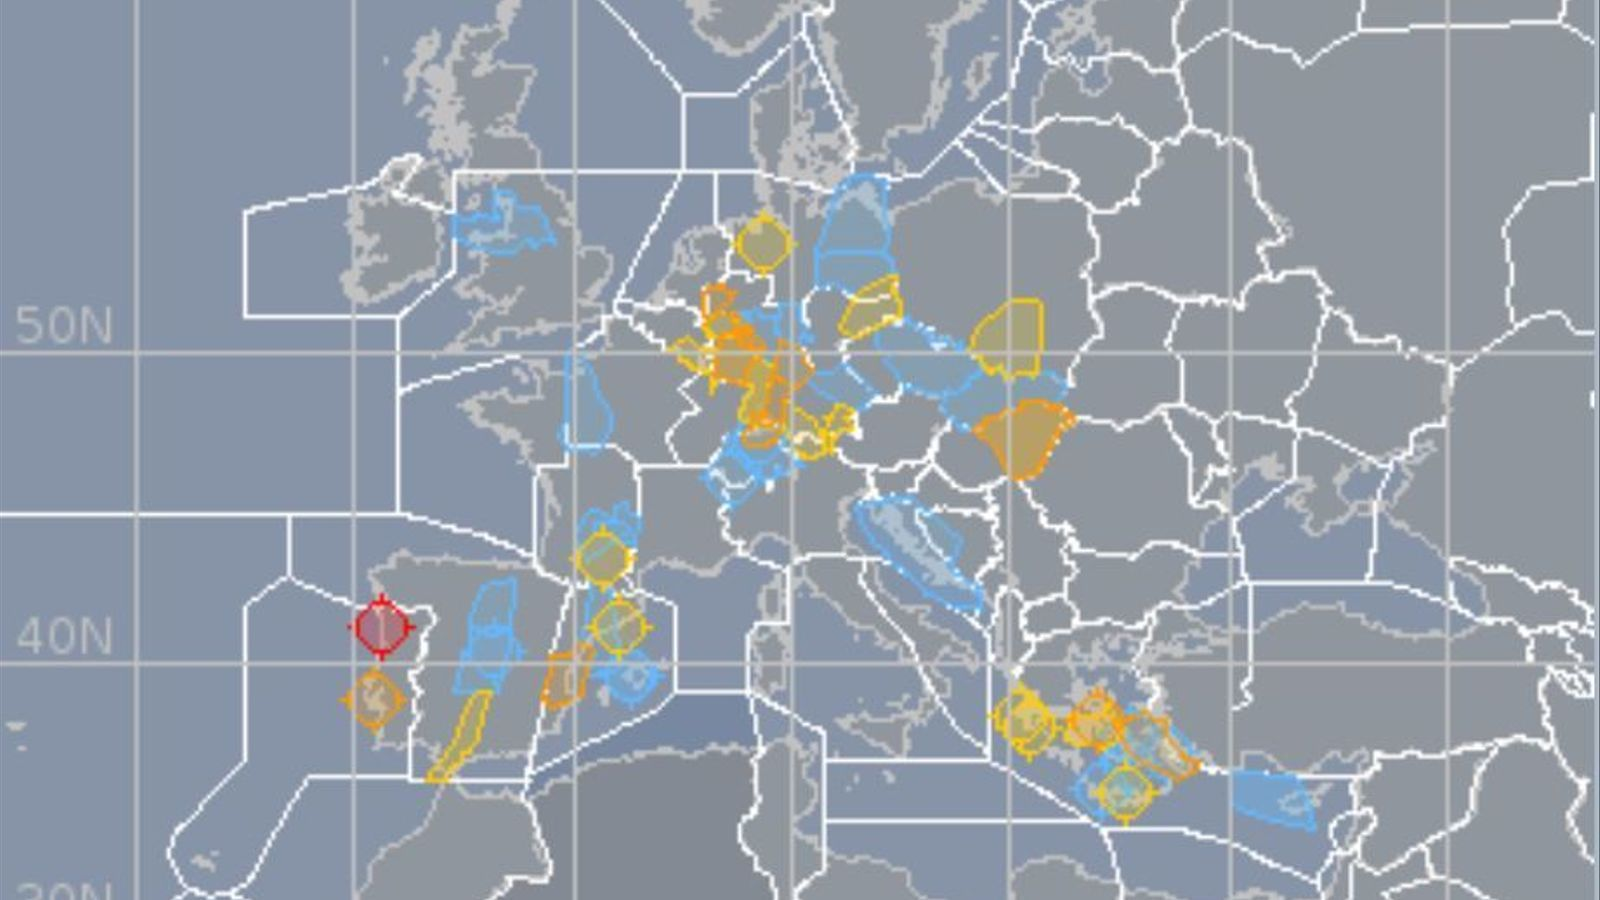 Distints sectors aeris en què està dividit Europa